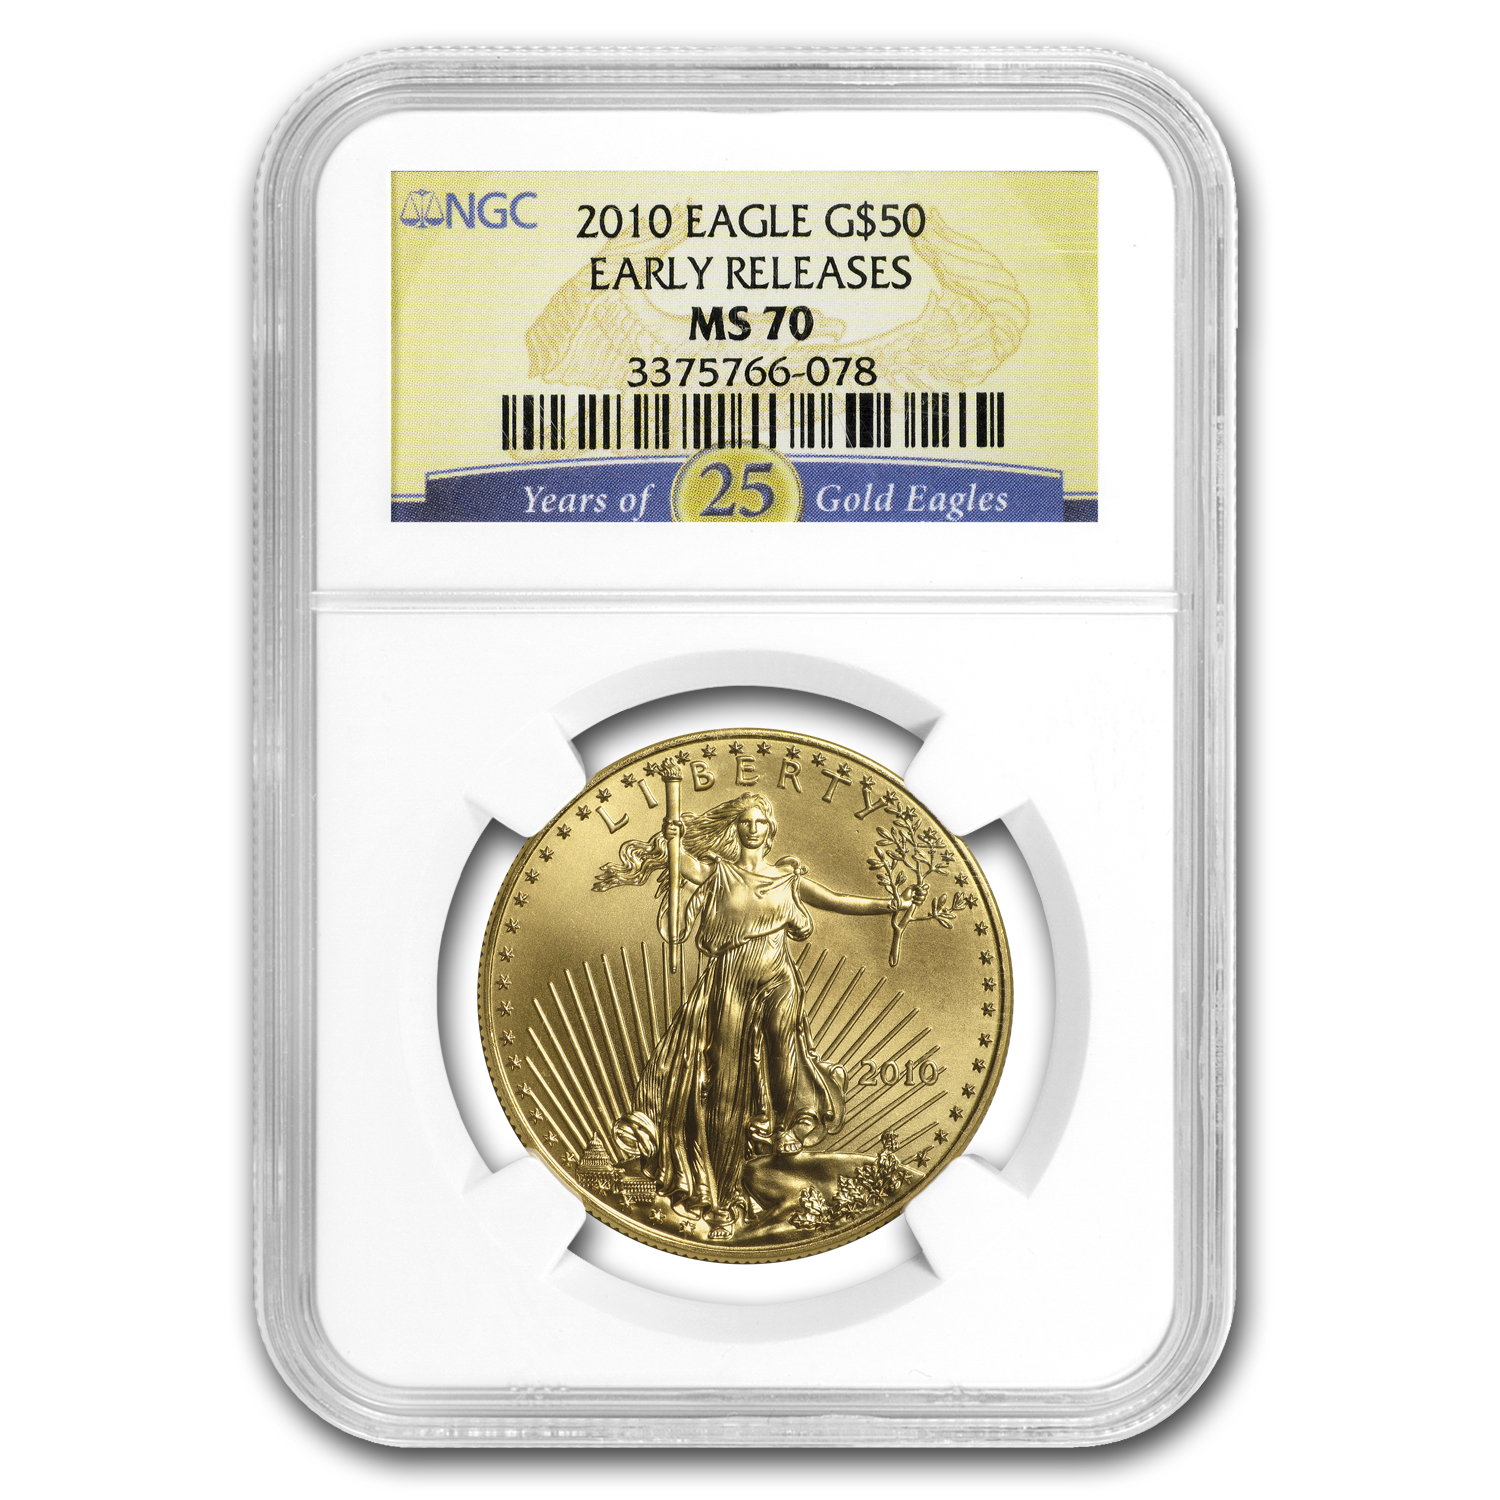 2010 1 oz Gold American Eagle MS-70 NGC (ER, 25 Years)